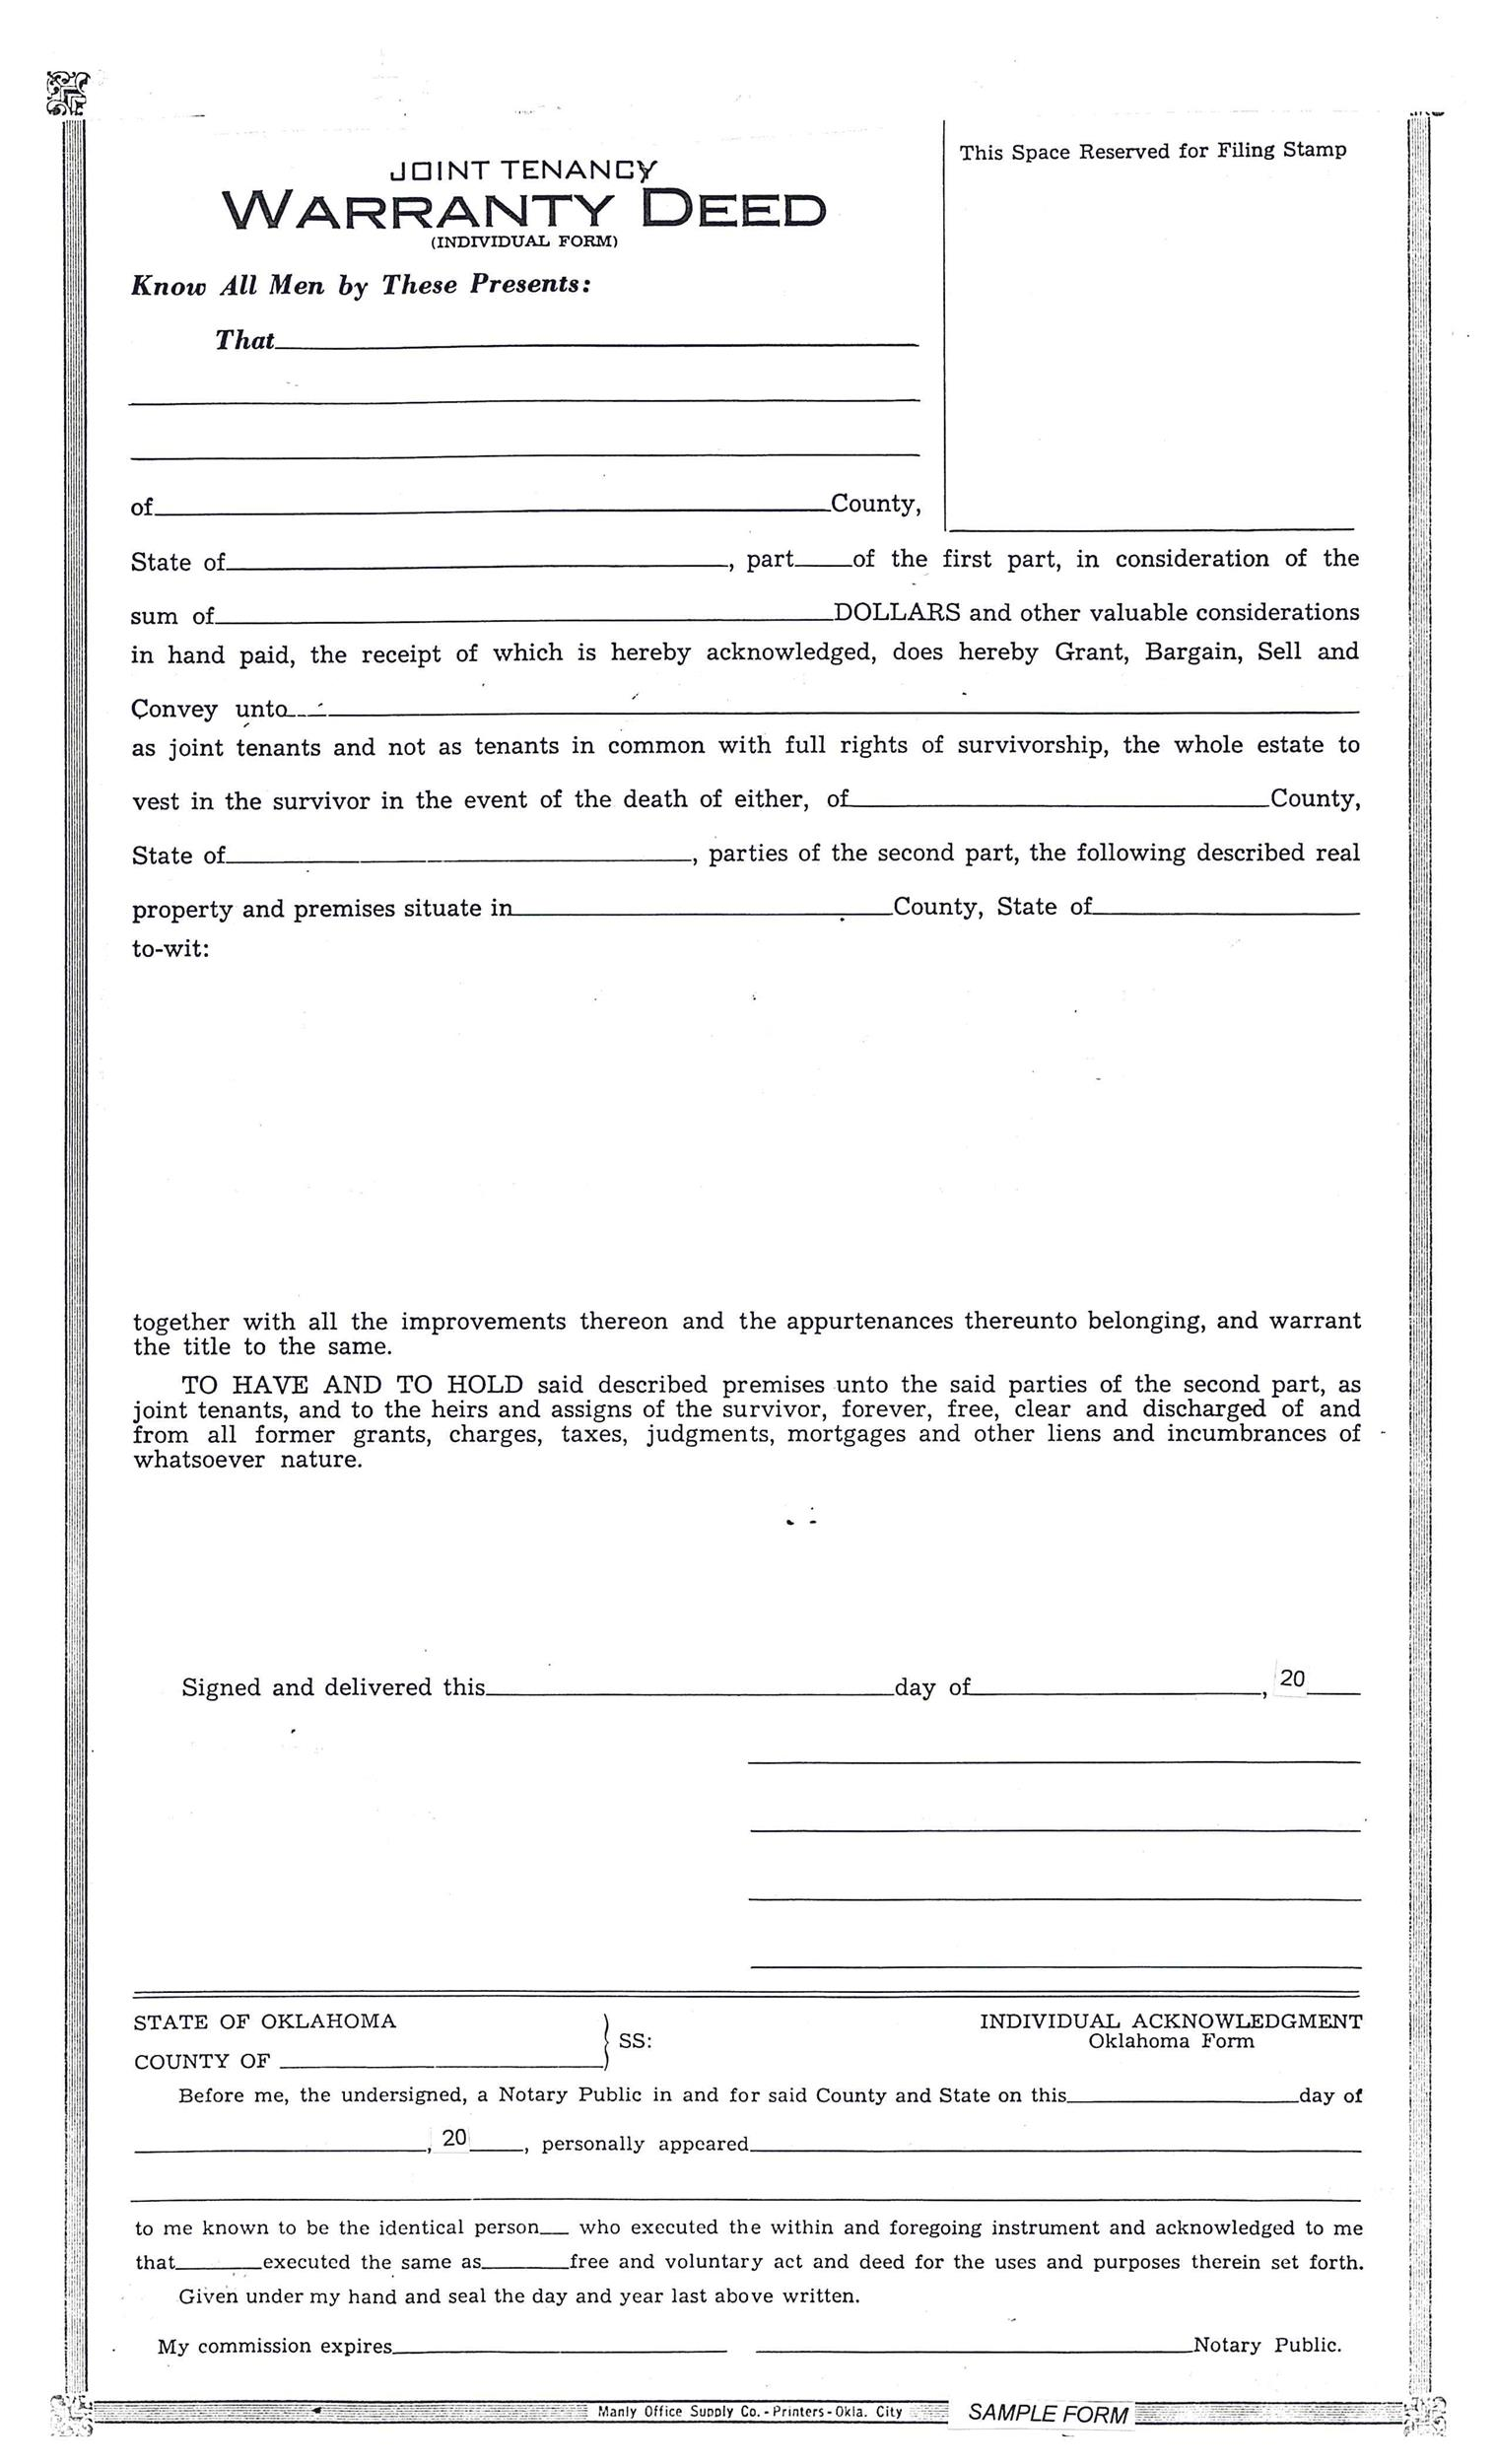 Free Warranty deed template 05